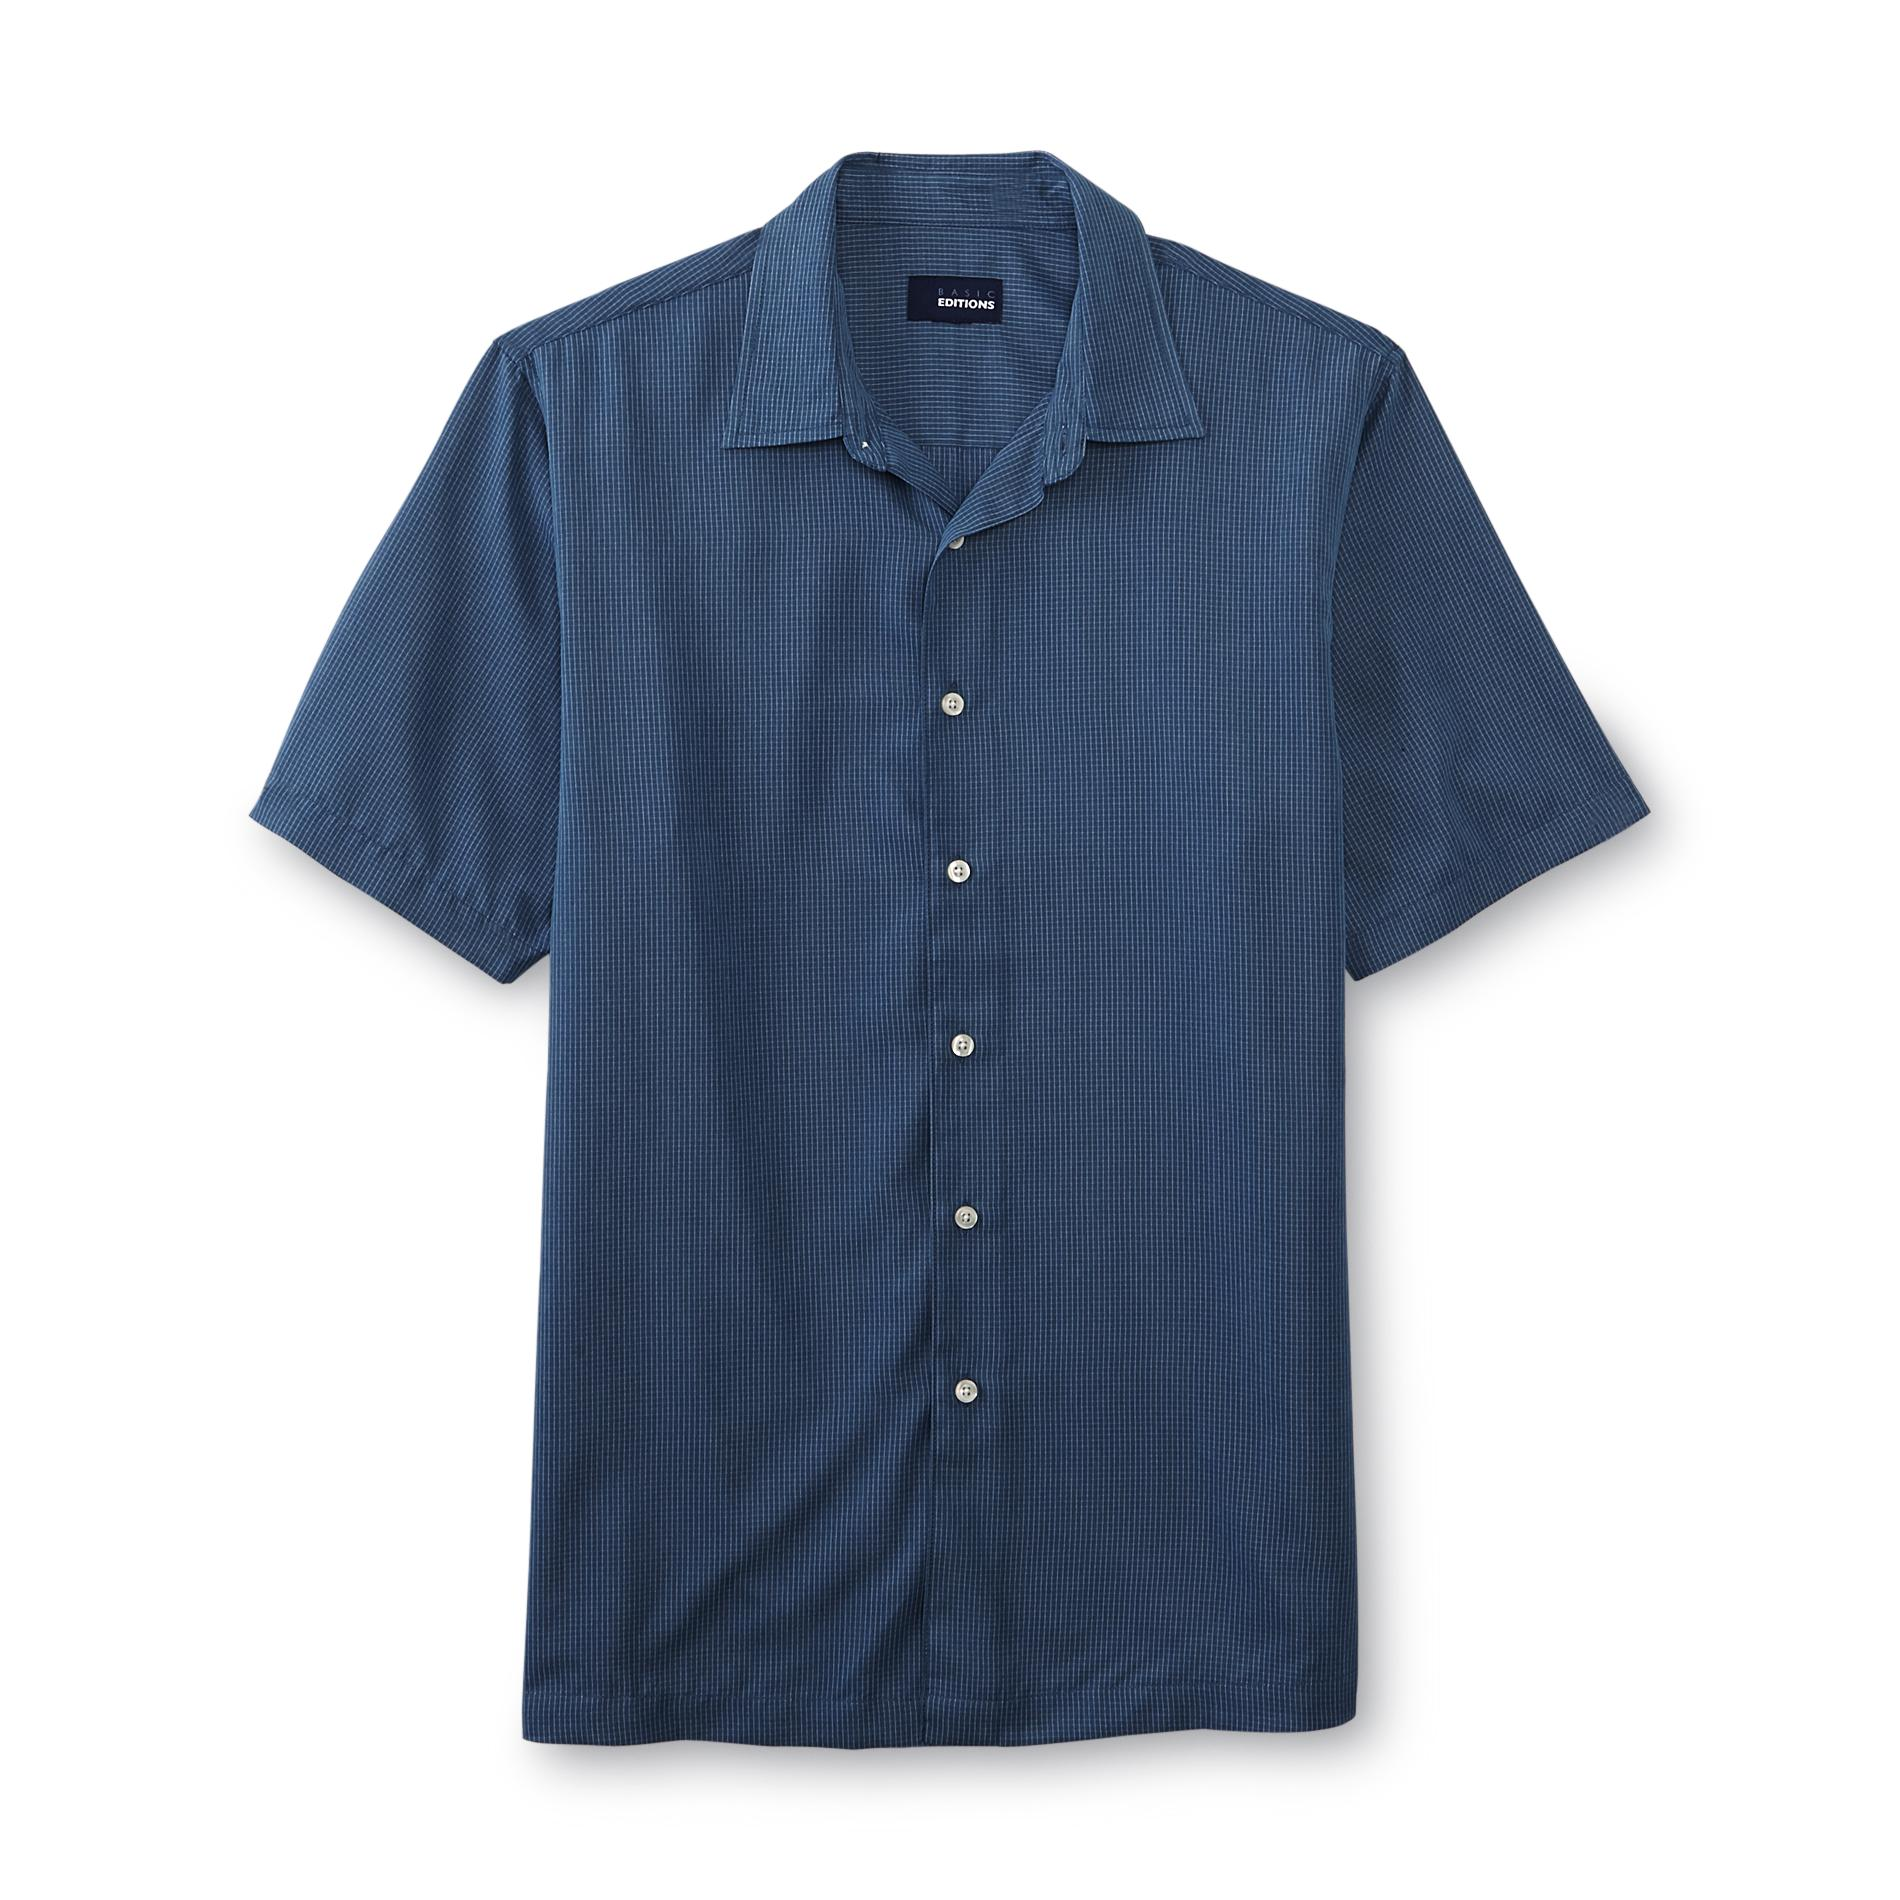 Basic Editions  Men's Woven Button-Front Shirt